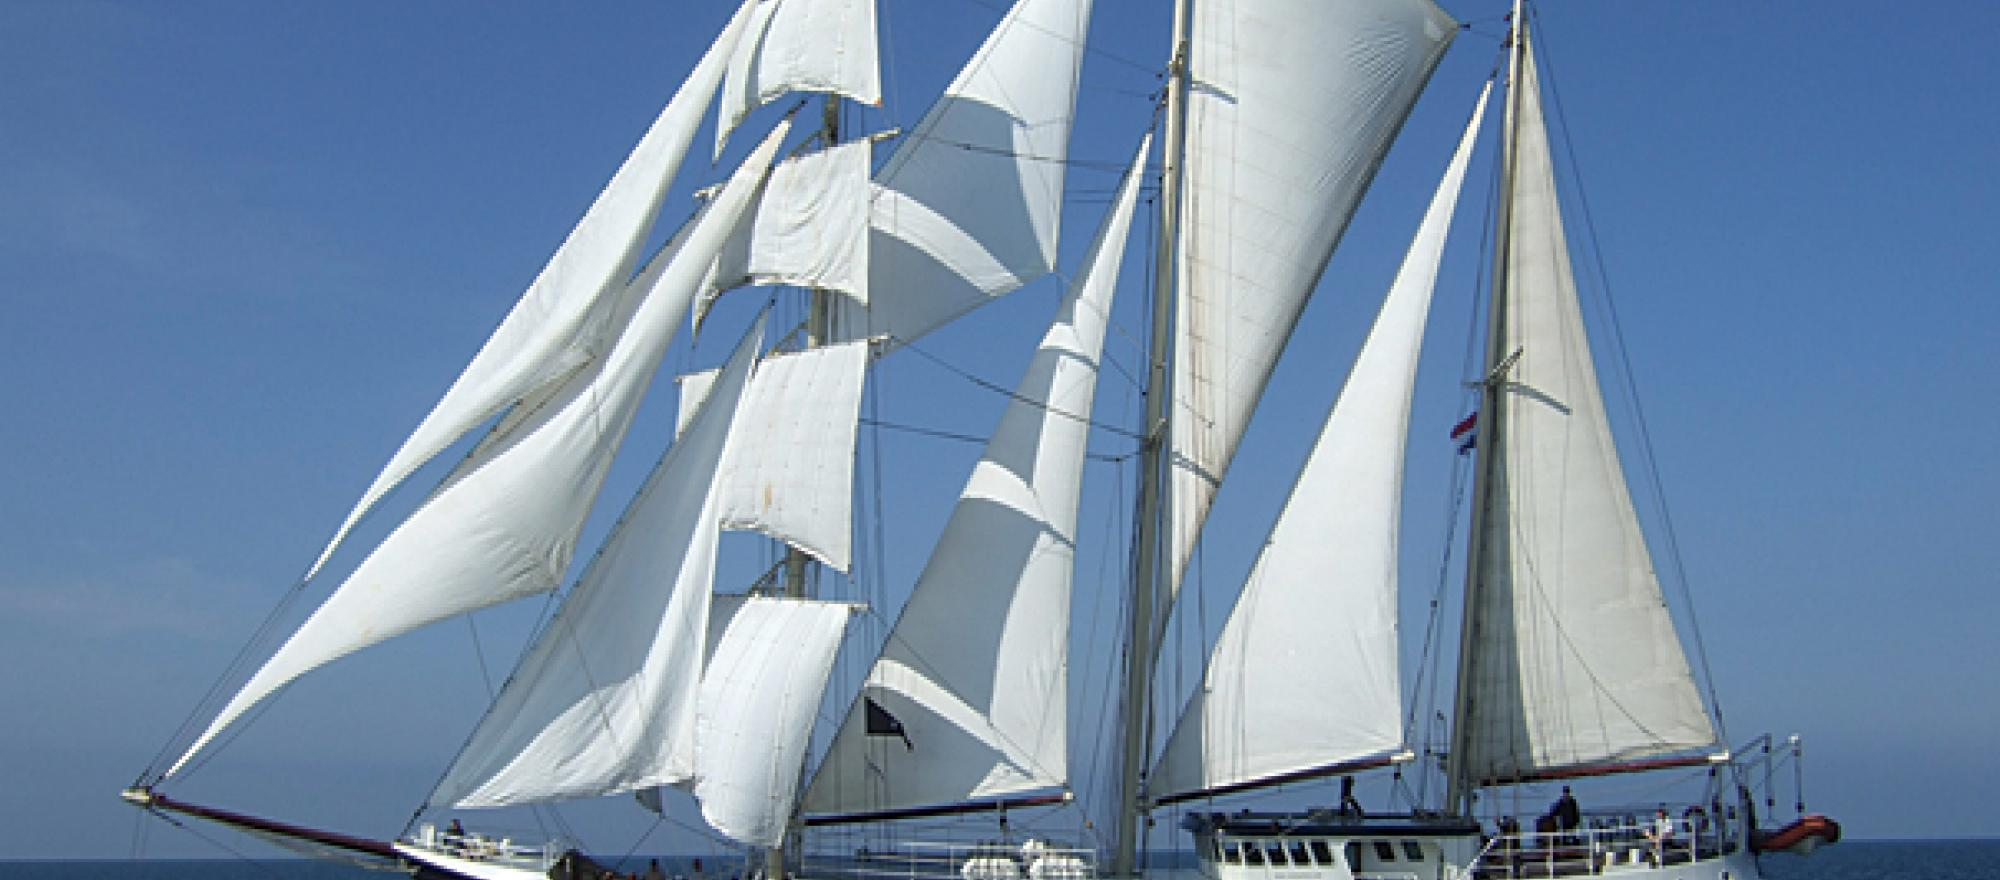 Kieler Woche is the world's largest sailing event and the largest annual fest